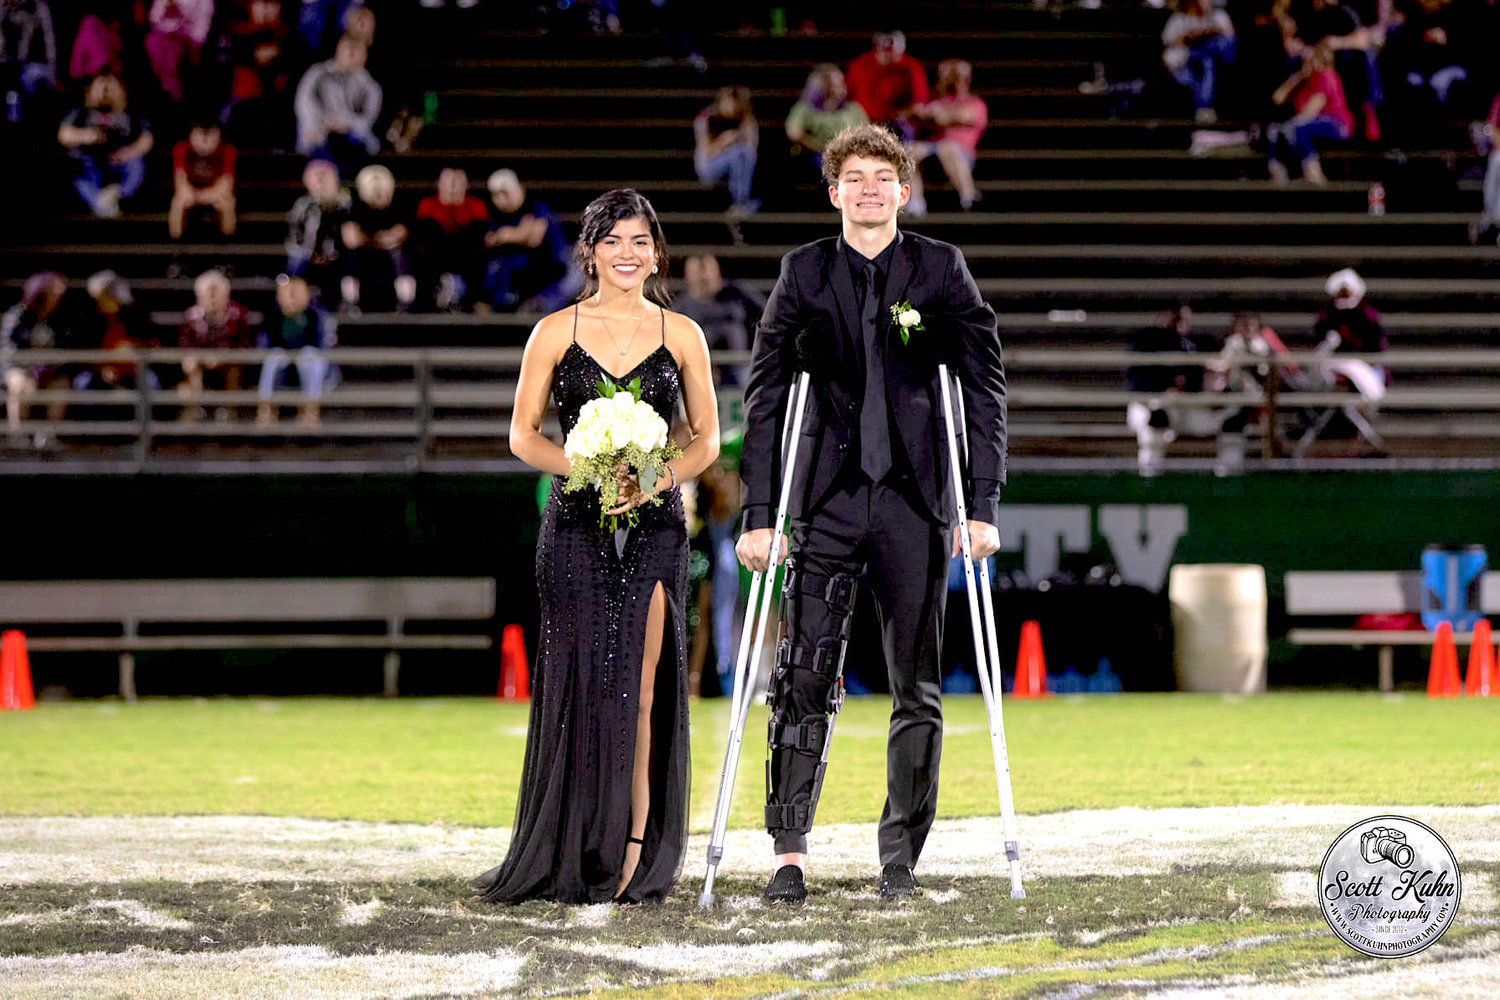 Homecoming Queen Vianca Gamboa and escort Athan Hicks